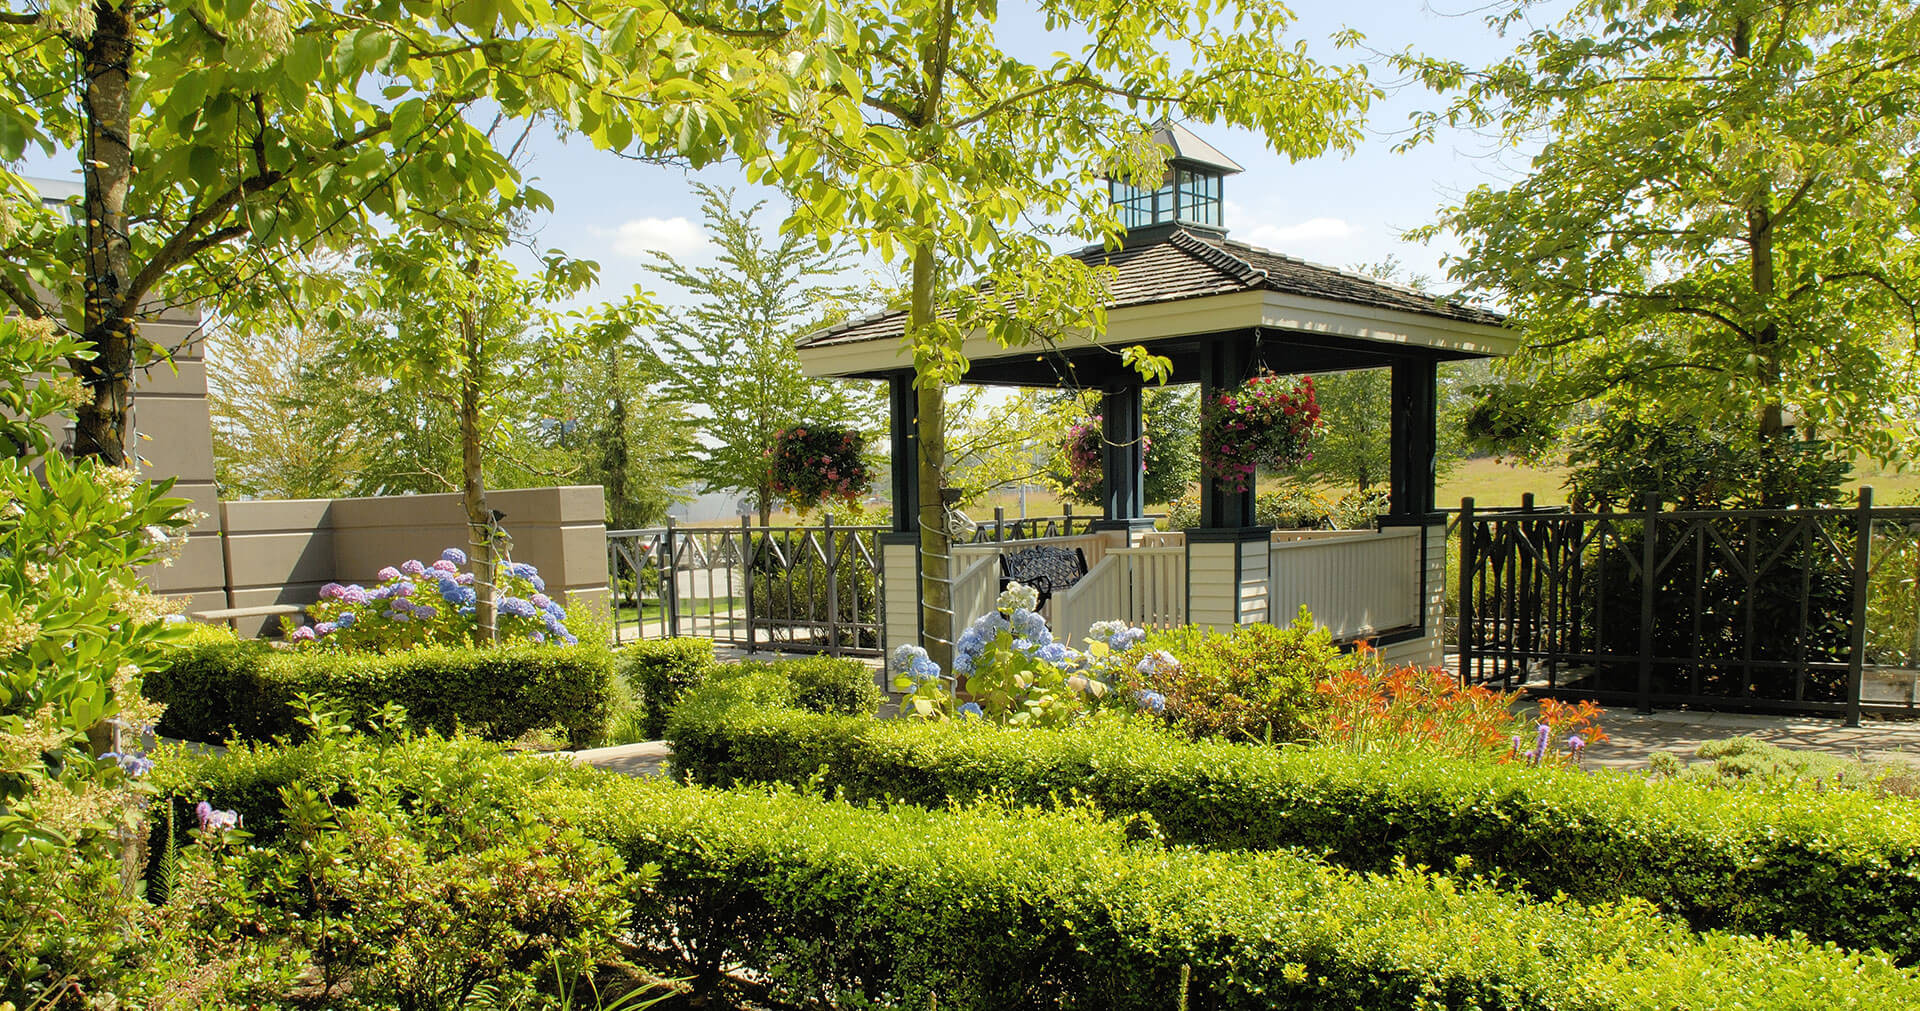 Gazebo nestled among flowers, manicured trees and shrubs